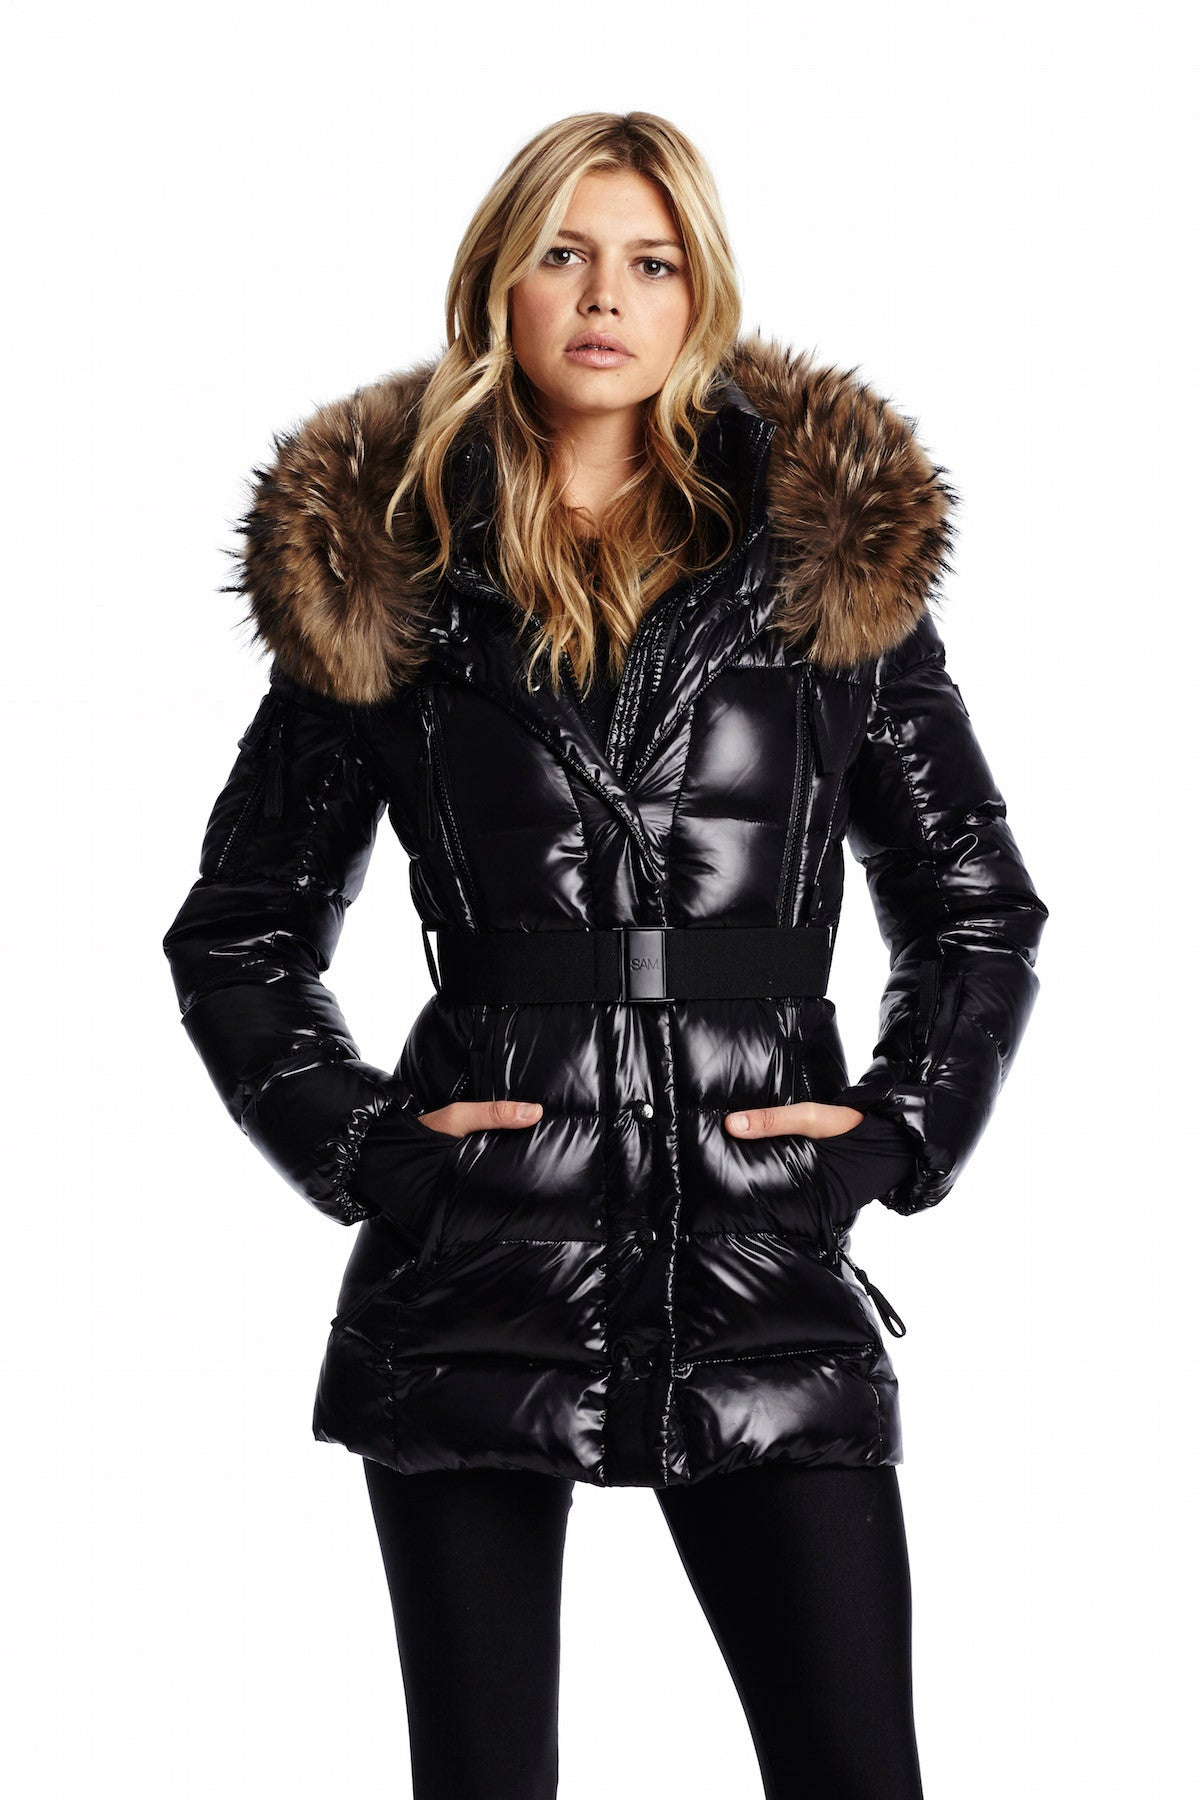 Millennium Puffer Coat With Fur Sam Coat Jacket